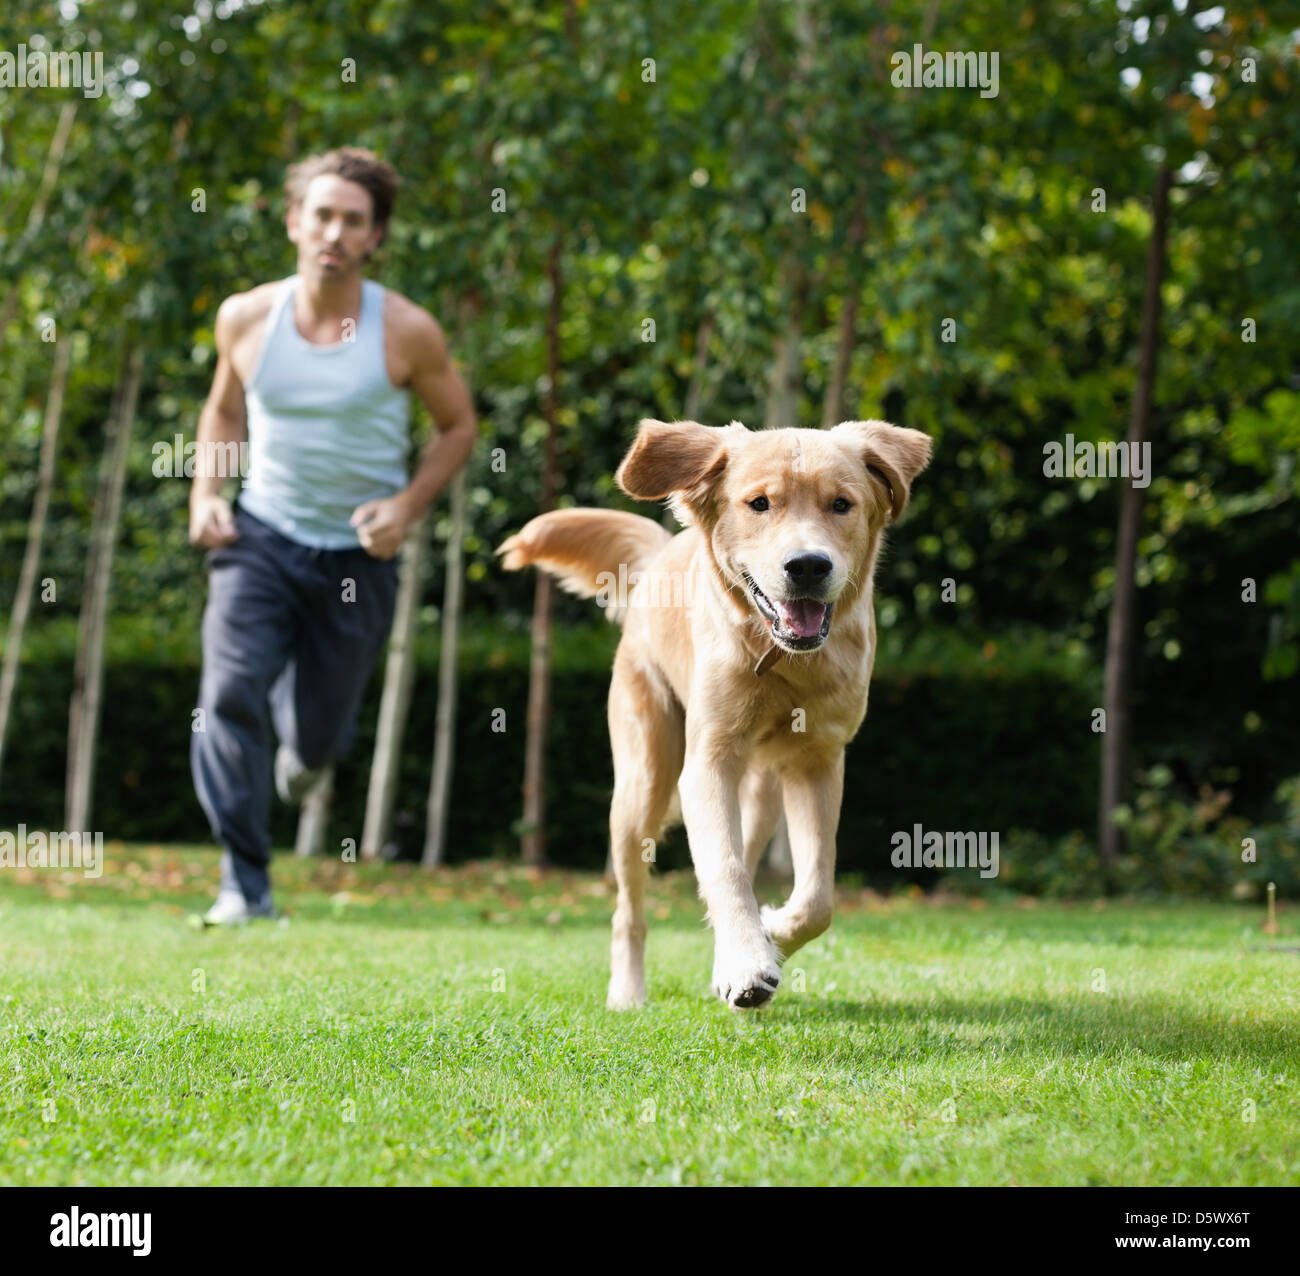 Man running with dog in park Stock Photo: 55273760 - Alamy